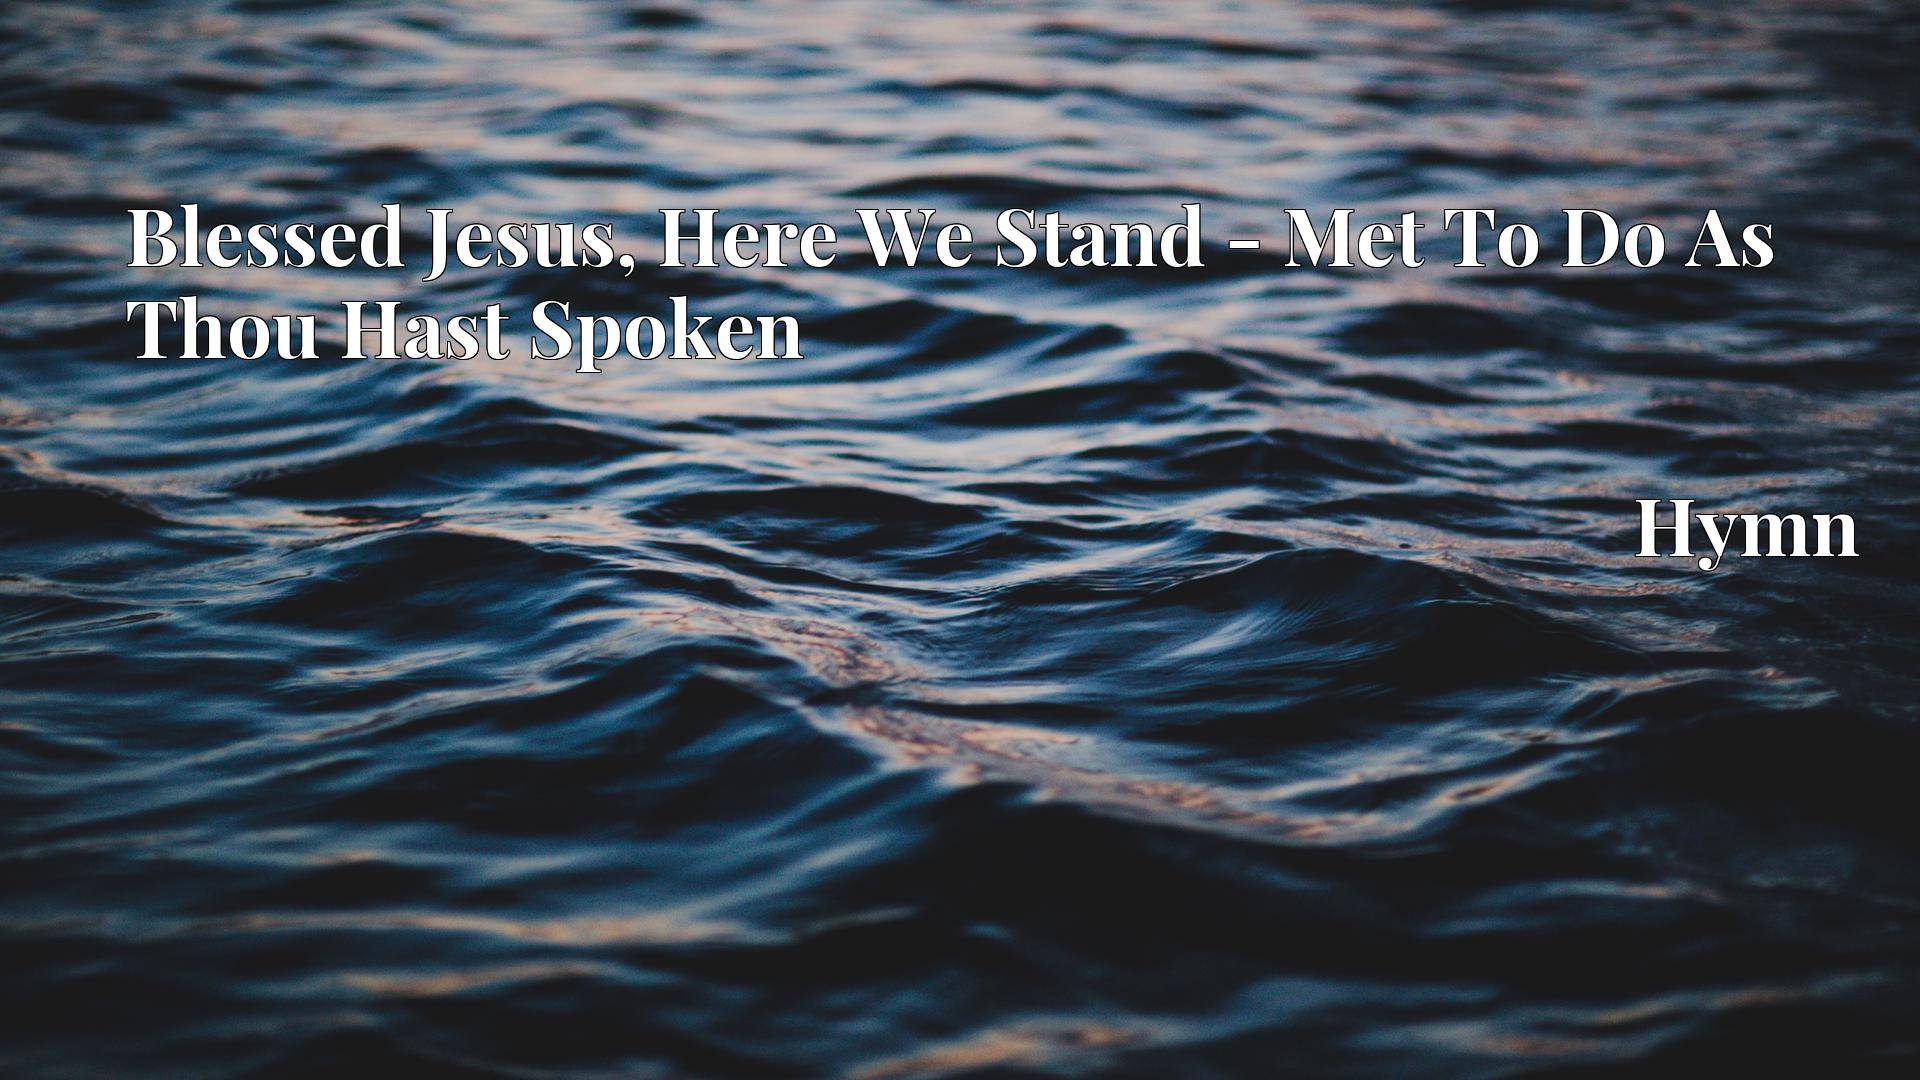 Blessed Jesus, Here We Stand - Met To Do As Thou Hast Spoken Hymn